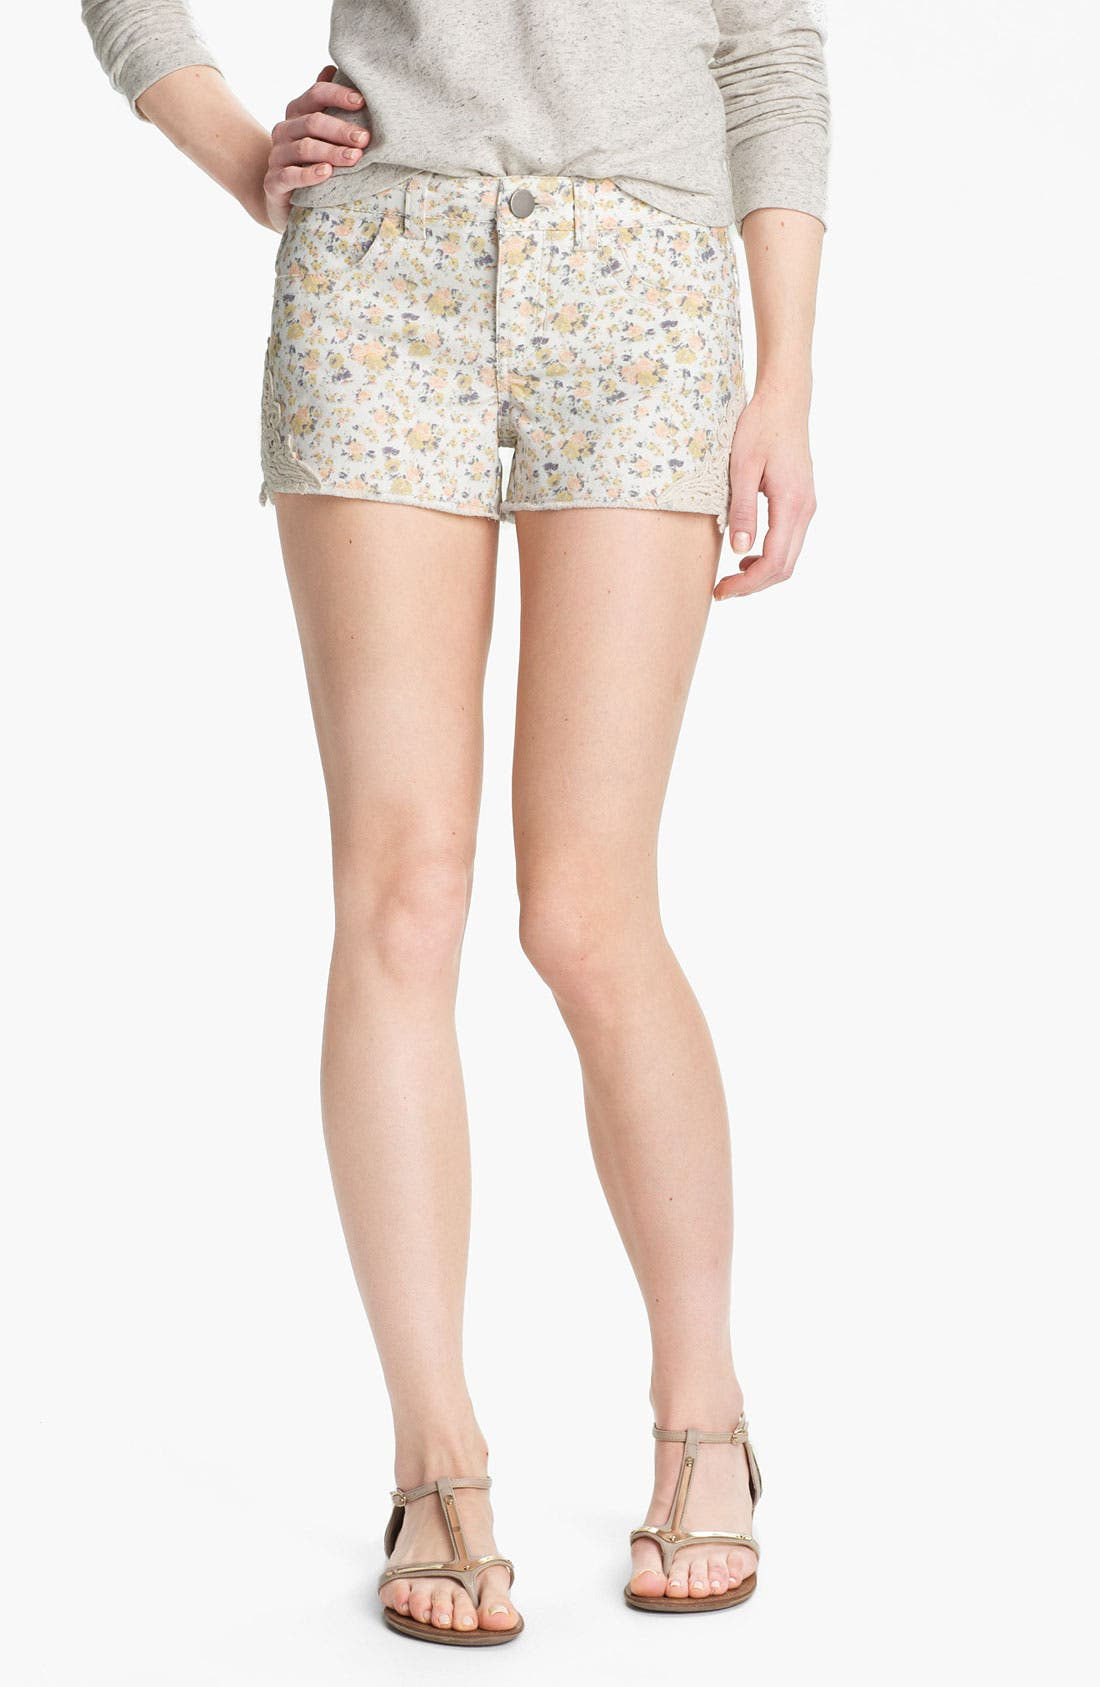 Alternate Image 1 Selected - Fire Crochet Trim Print Cutoff Denim Shorts (Juniors)